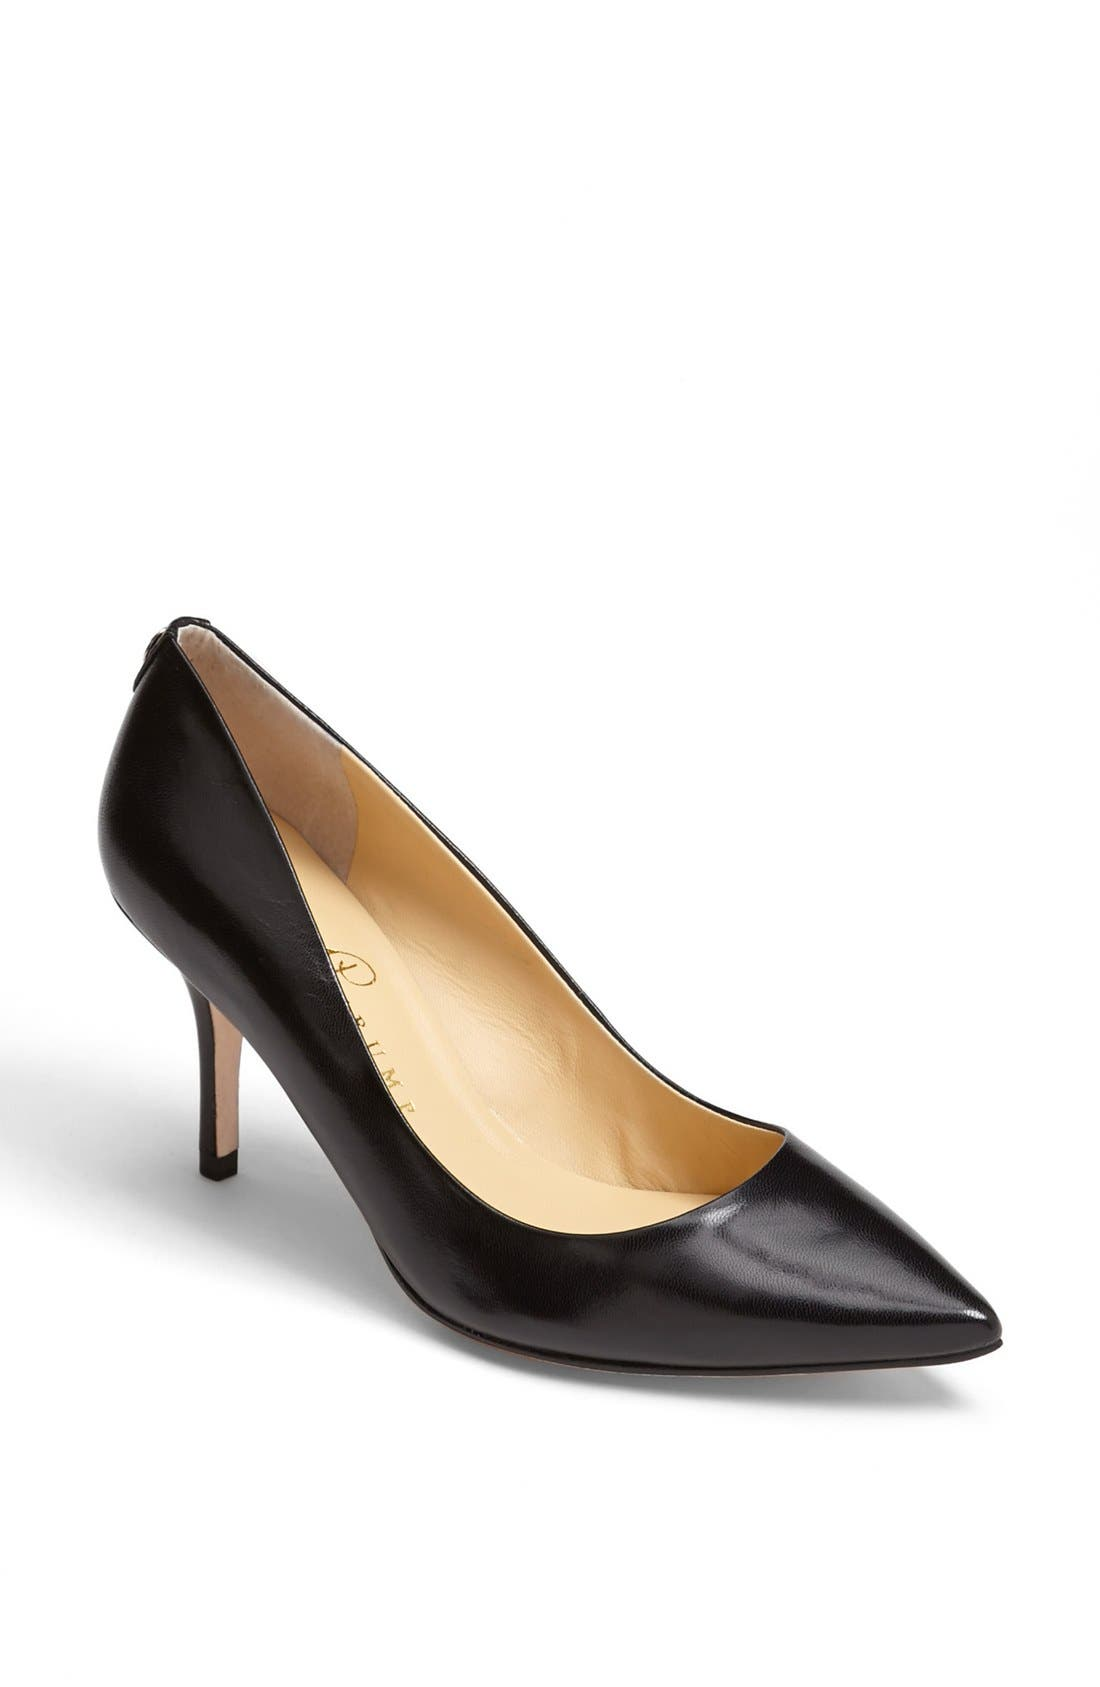 'Natalie' Pointed Toe Pump,                         Main,                         color, Black Leather